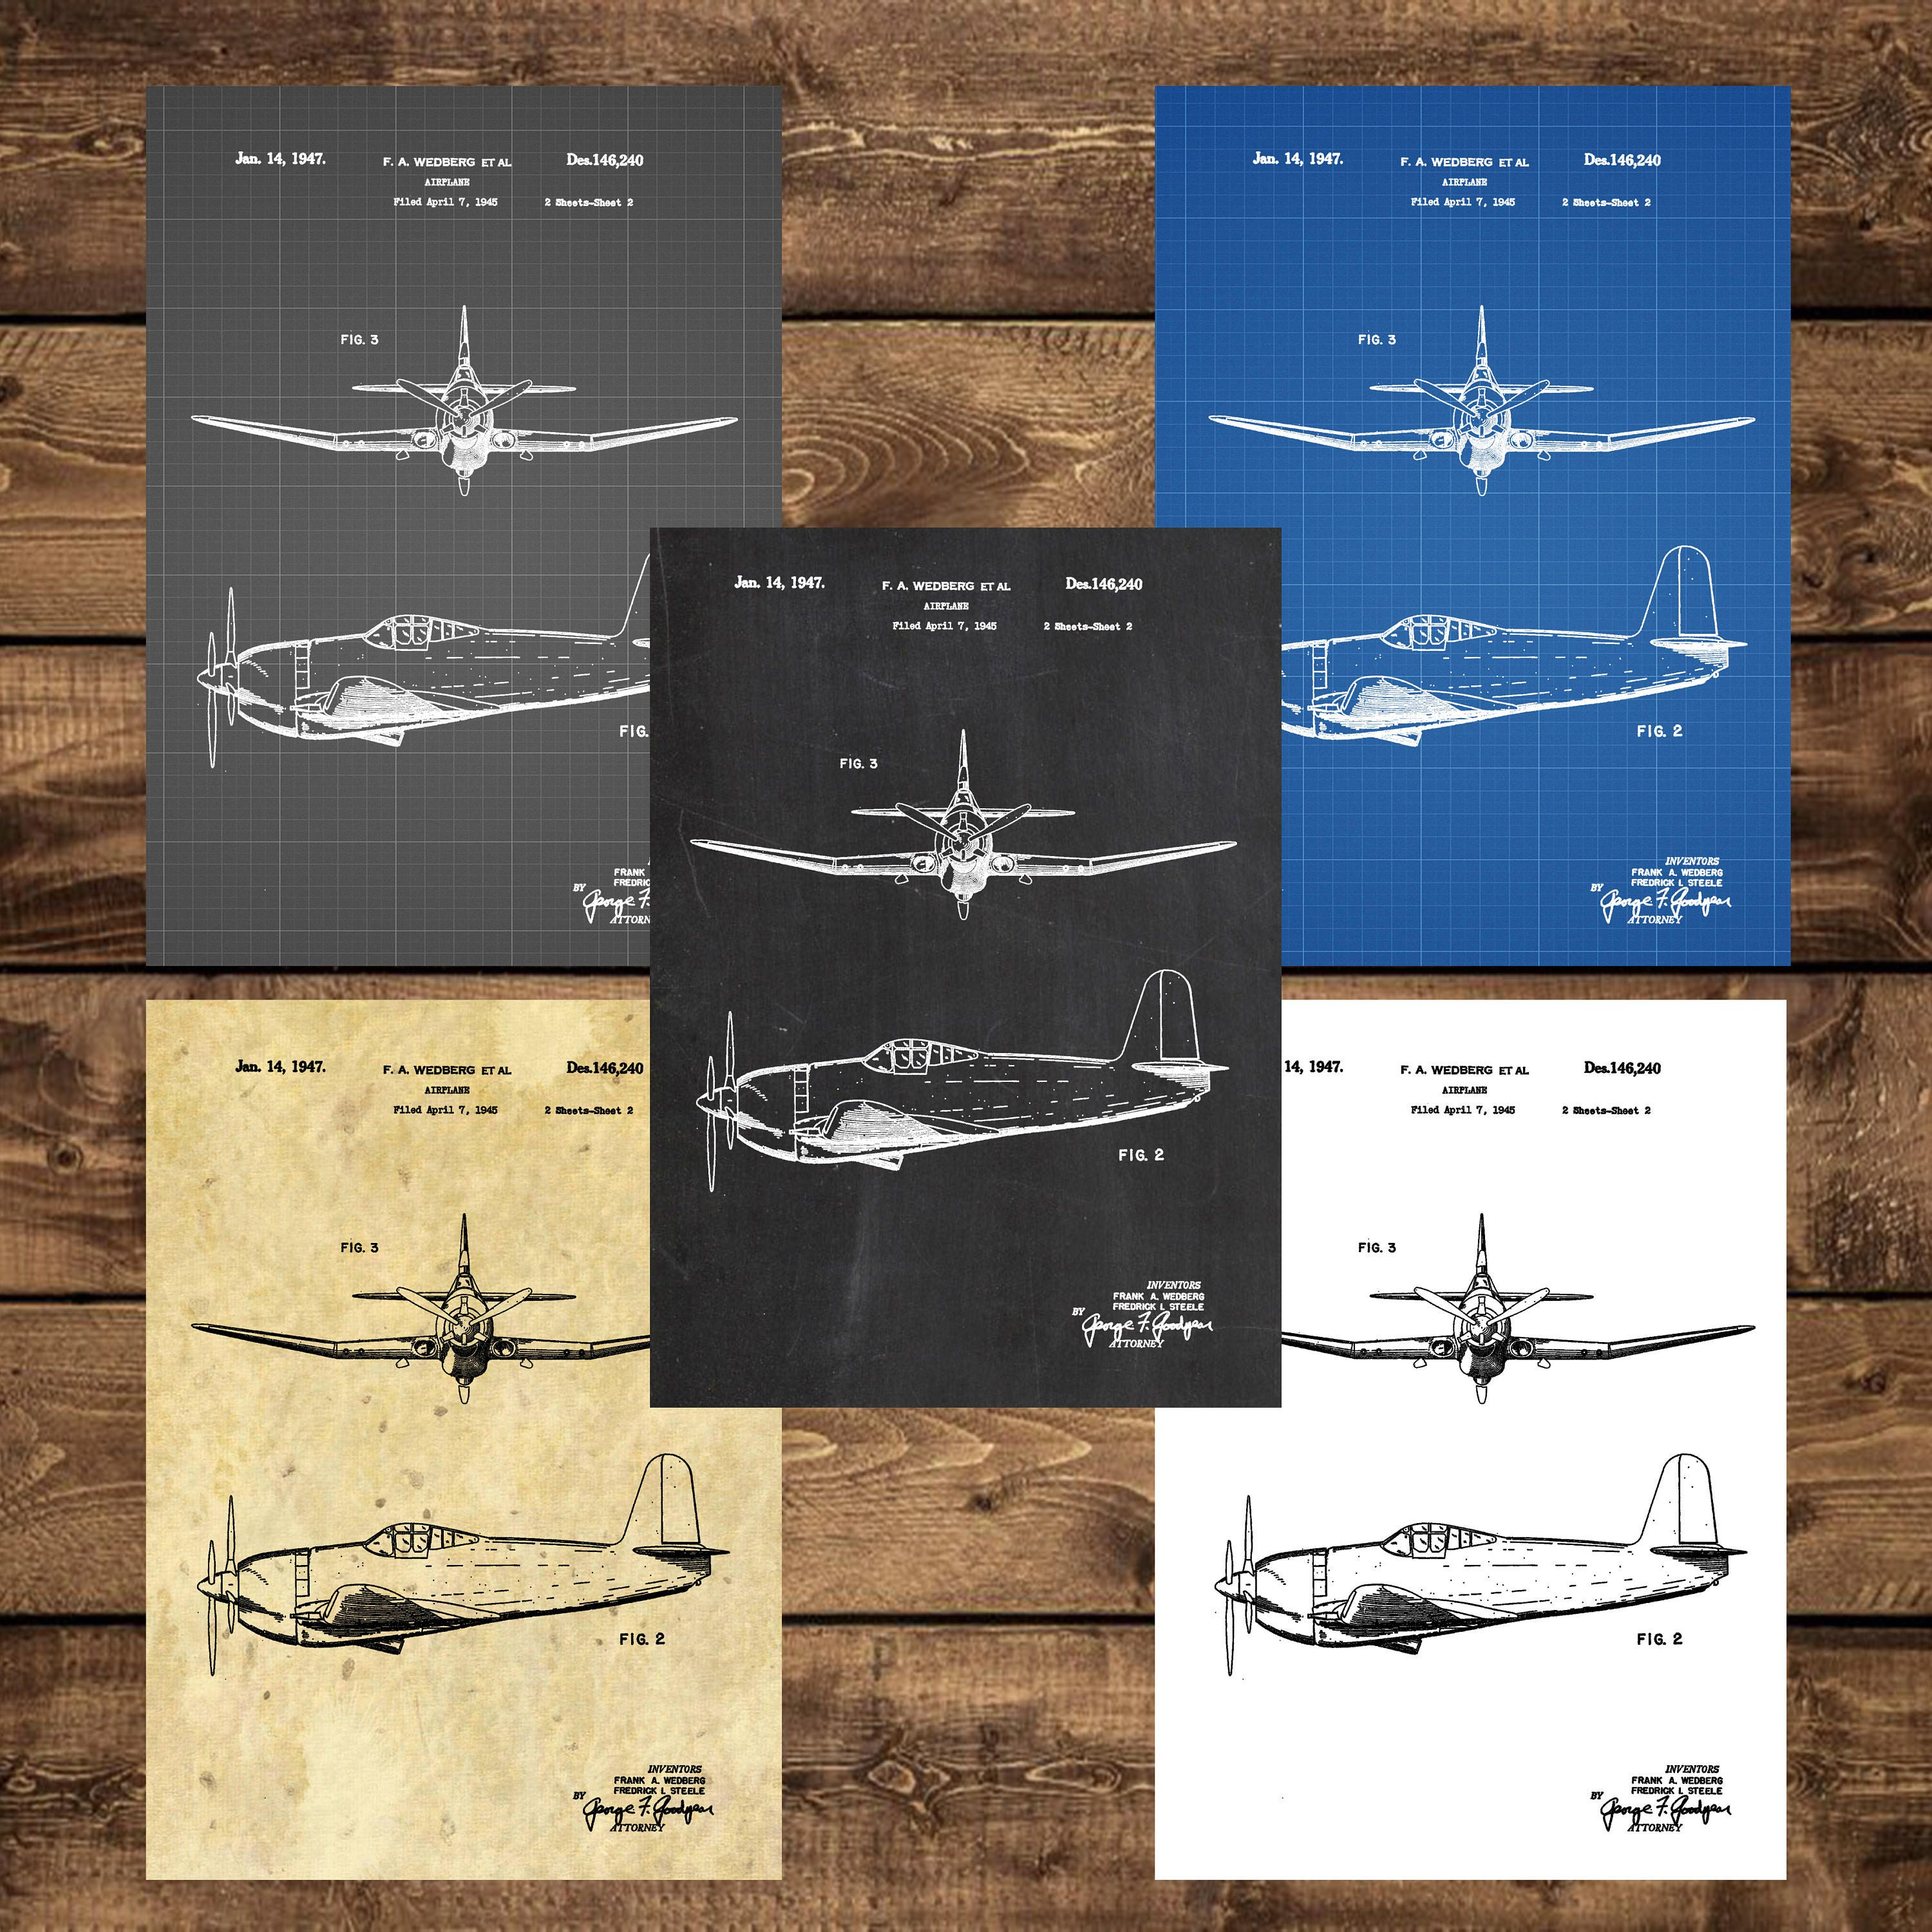 pin decal decor wall room jet mural boys airplane aircraft airliner dorm kids college aviation